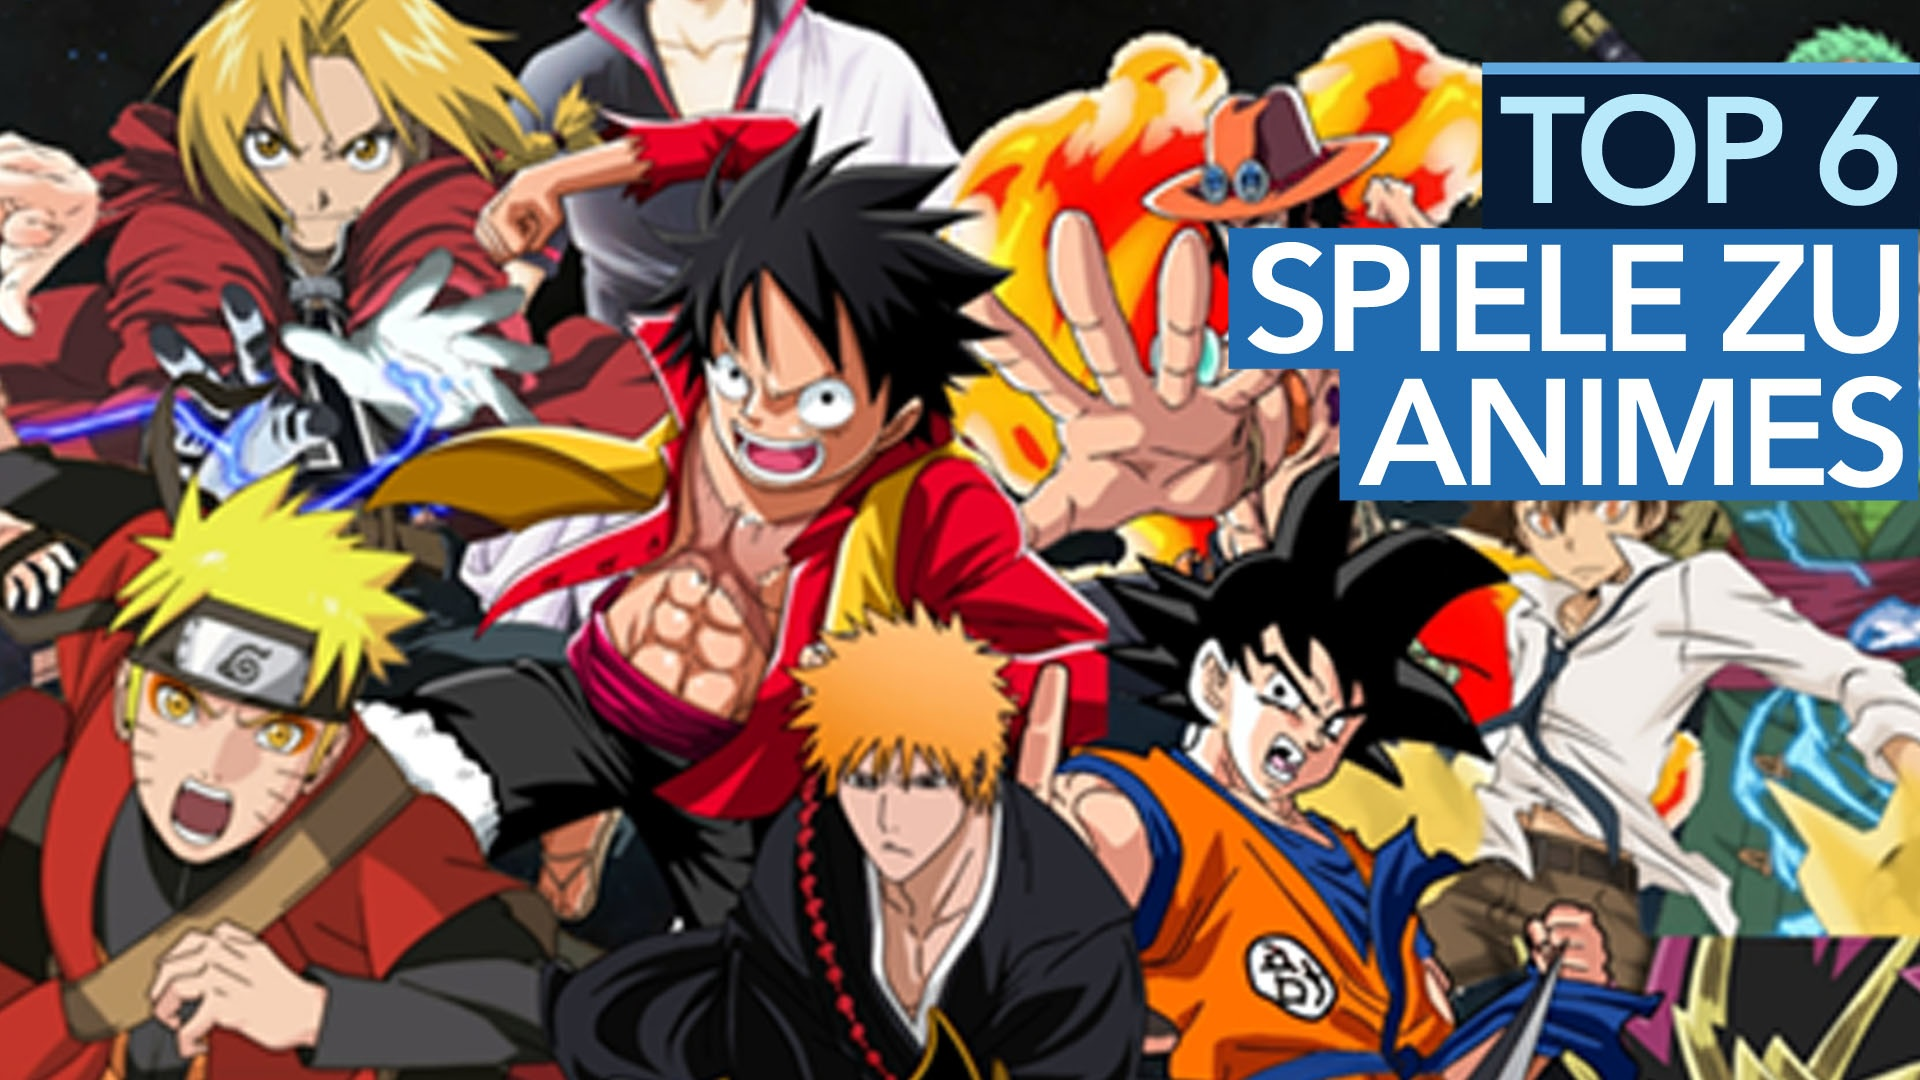 Von dragon ball bis one piece video die sechs besten - Dragon ball one piece ...